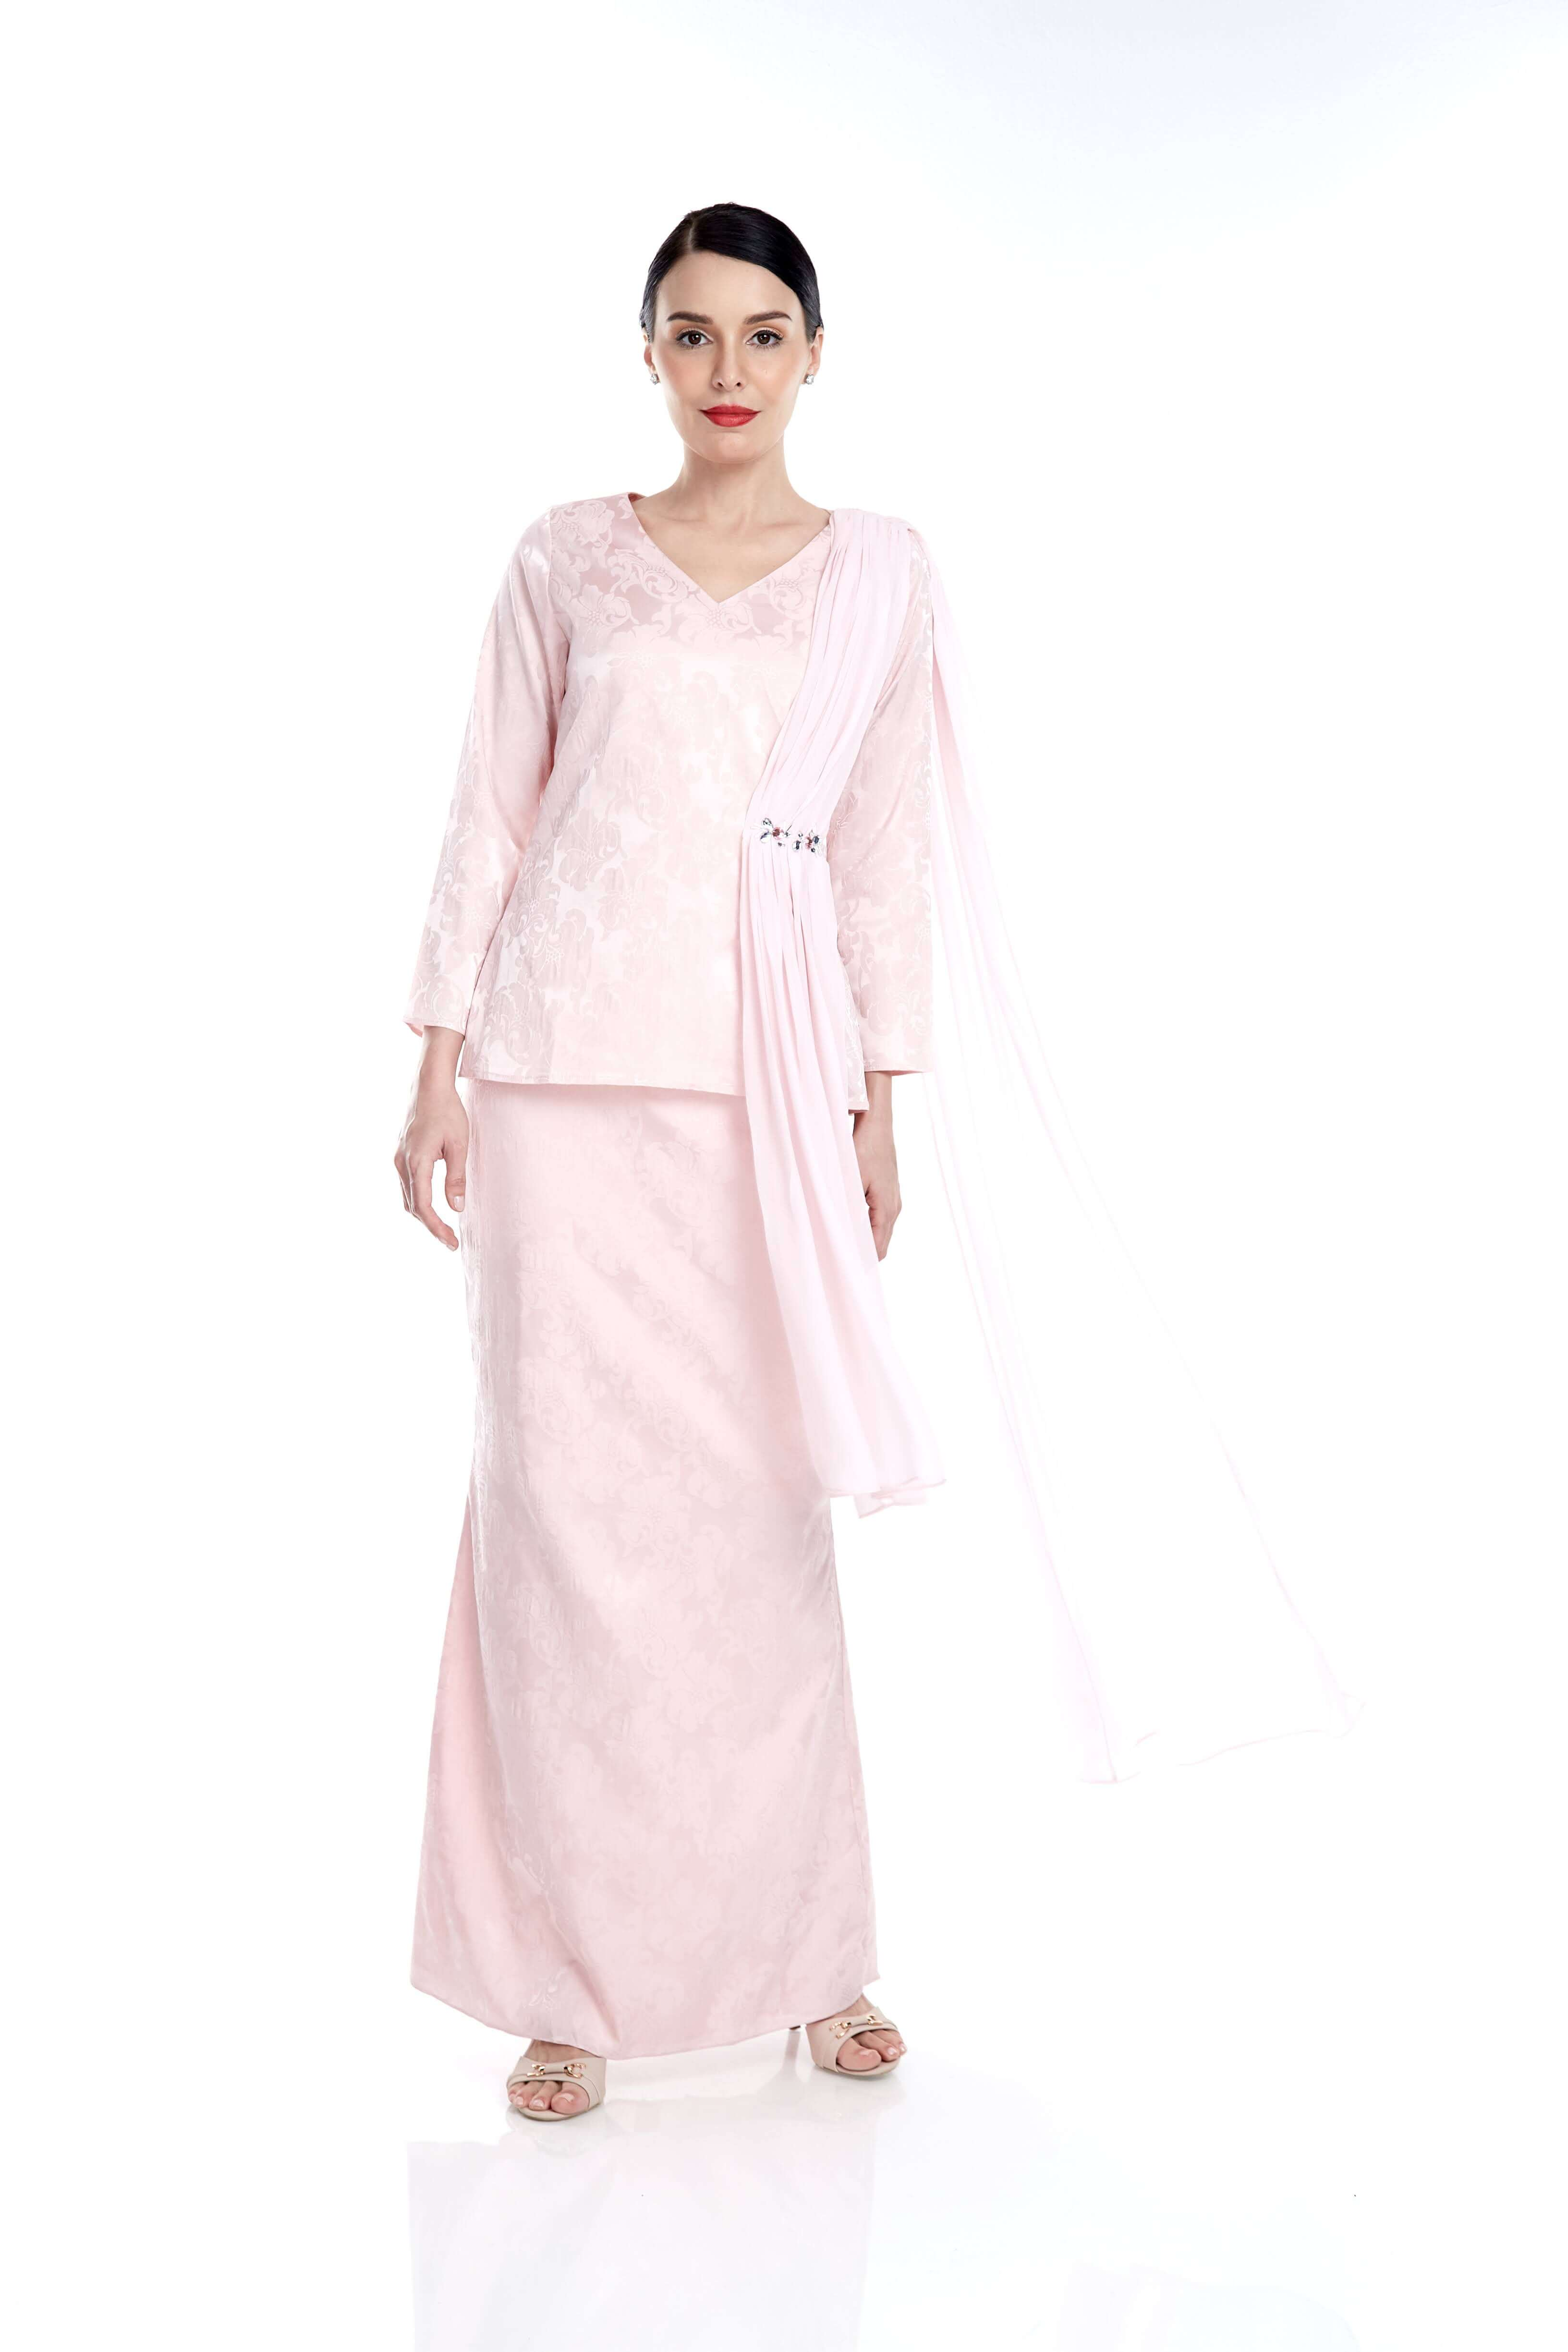 Pink Top With Attached Shawl & Embellishment (7)